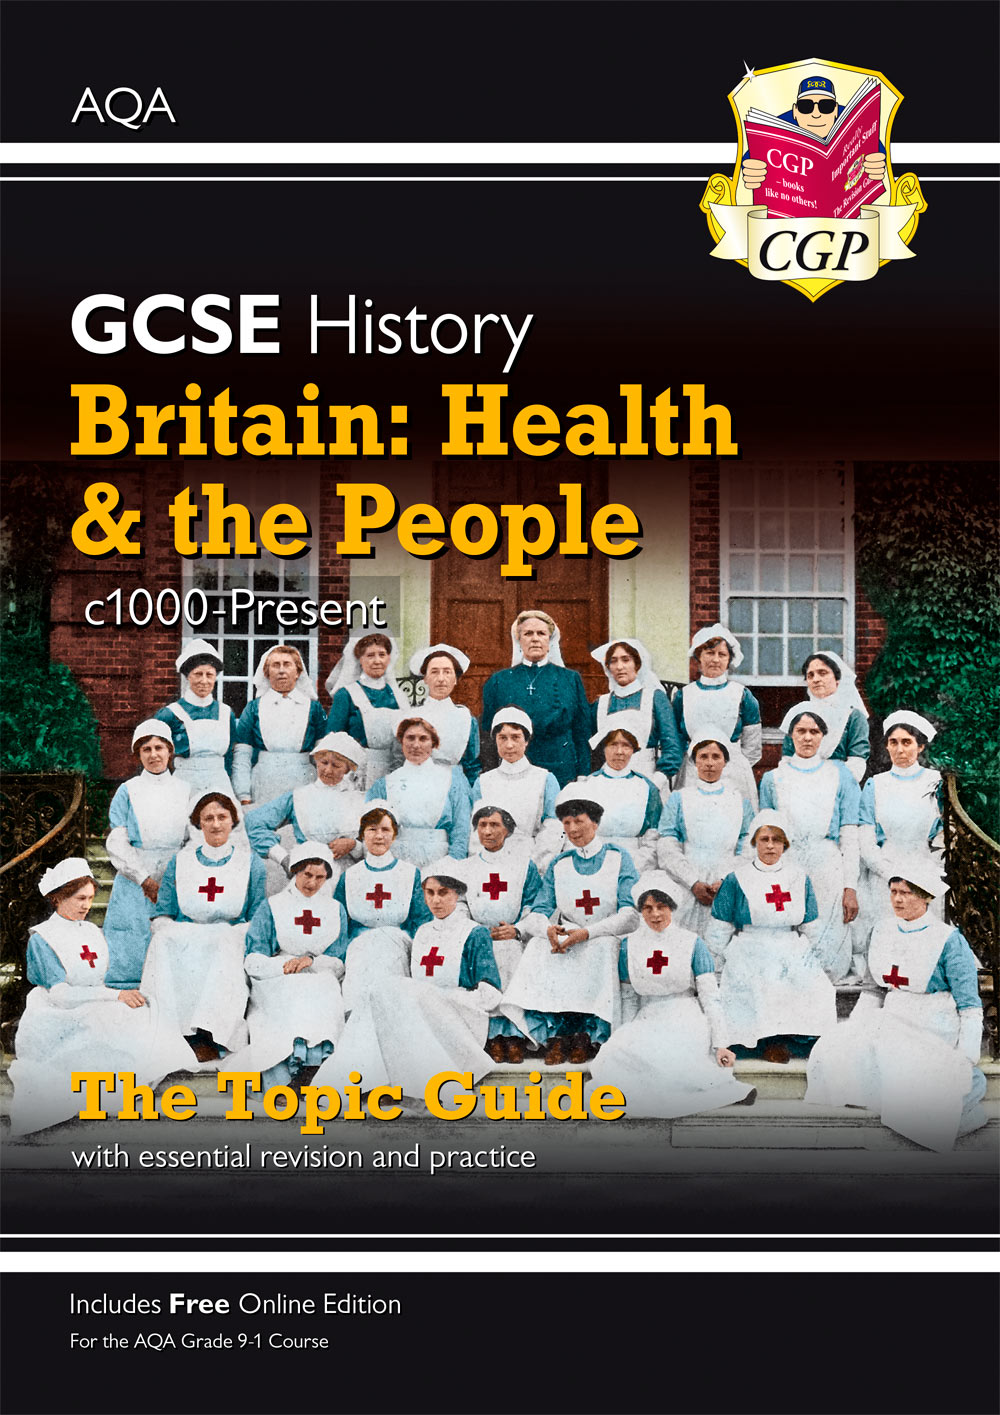 HAHPO41 - Grade 9-1 GCSE History AQA Topic Guide - Britain: Health and the People: c1000-Present Day